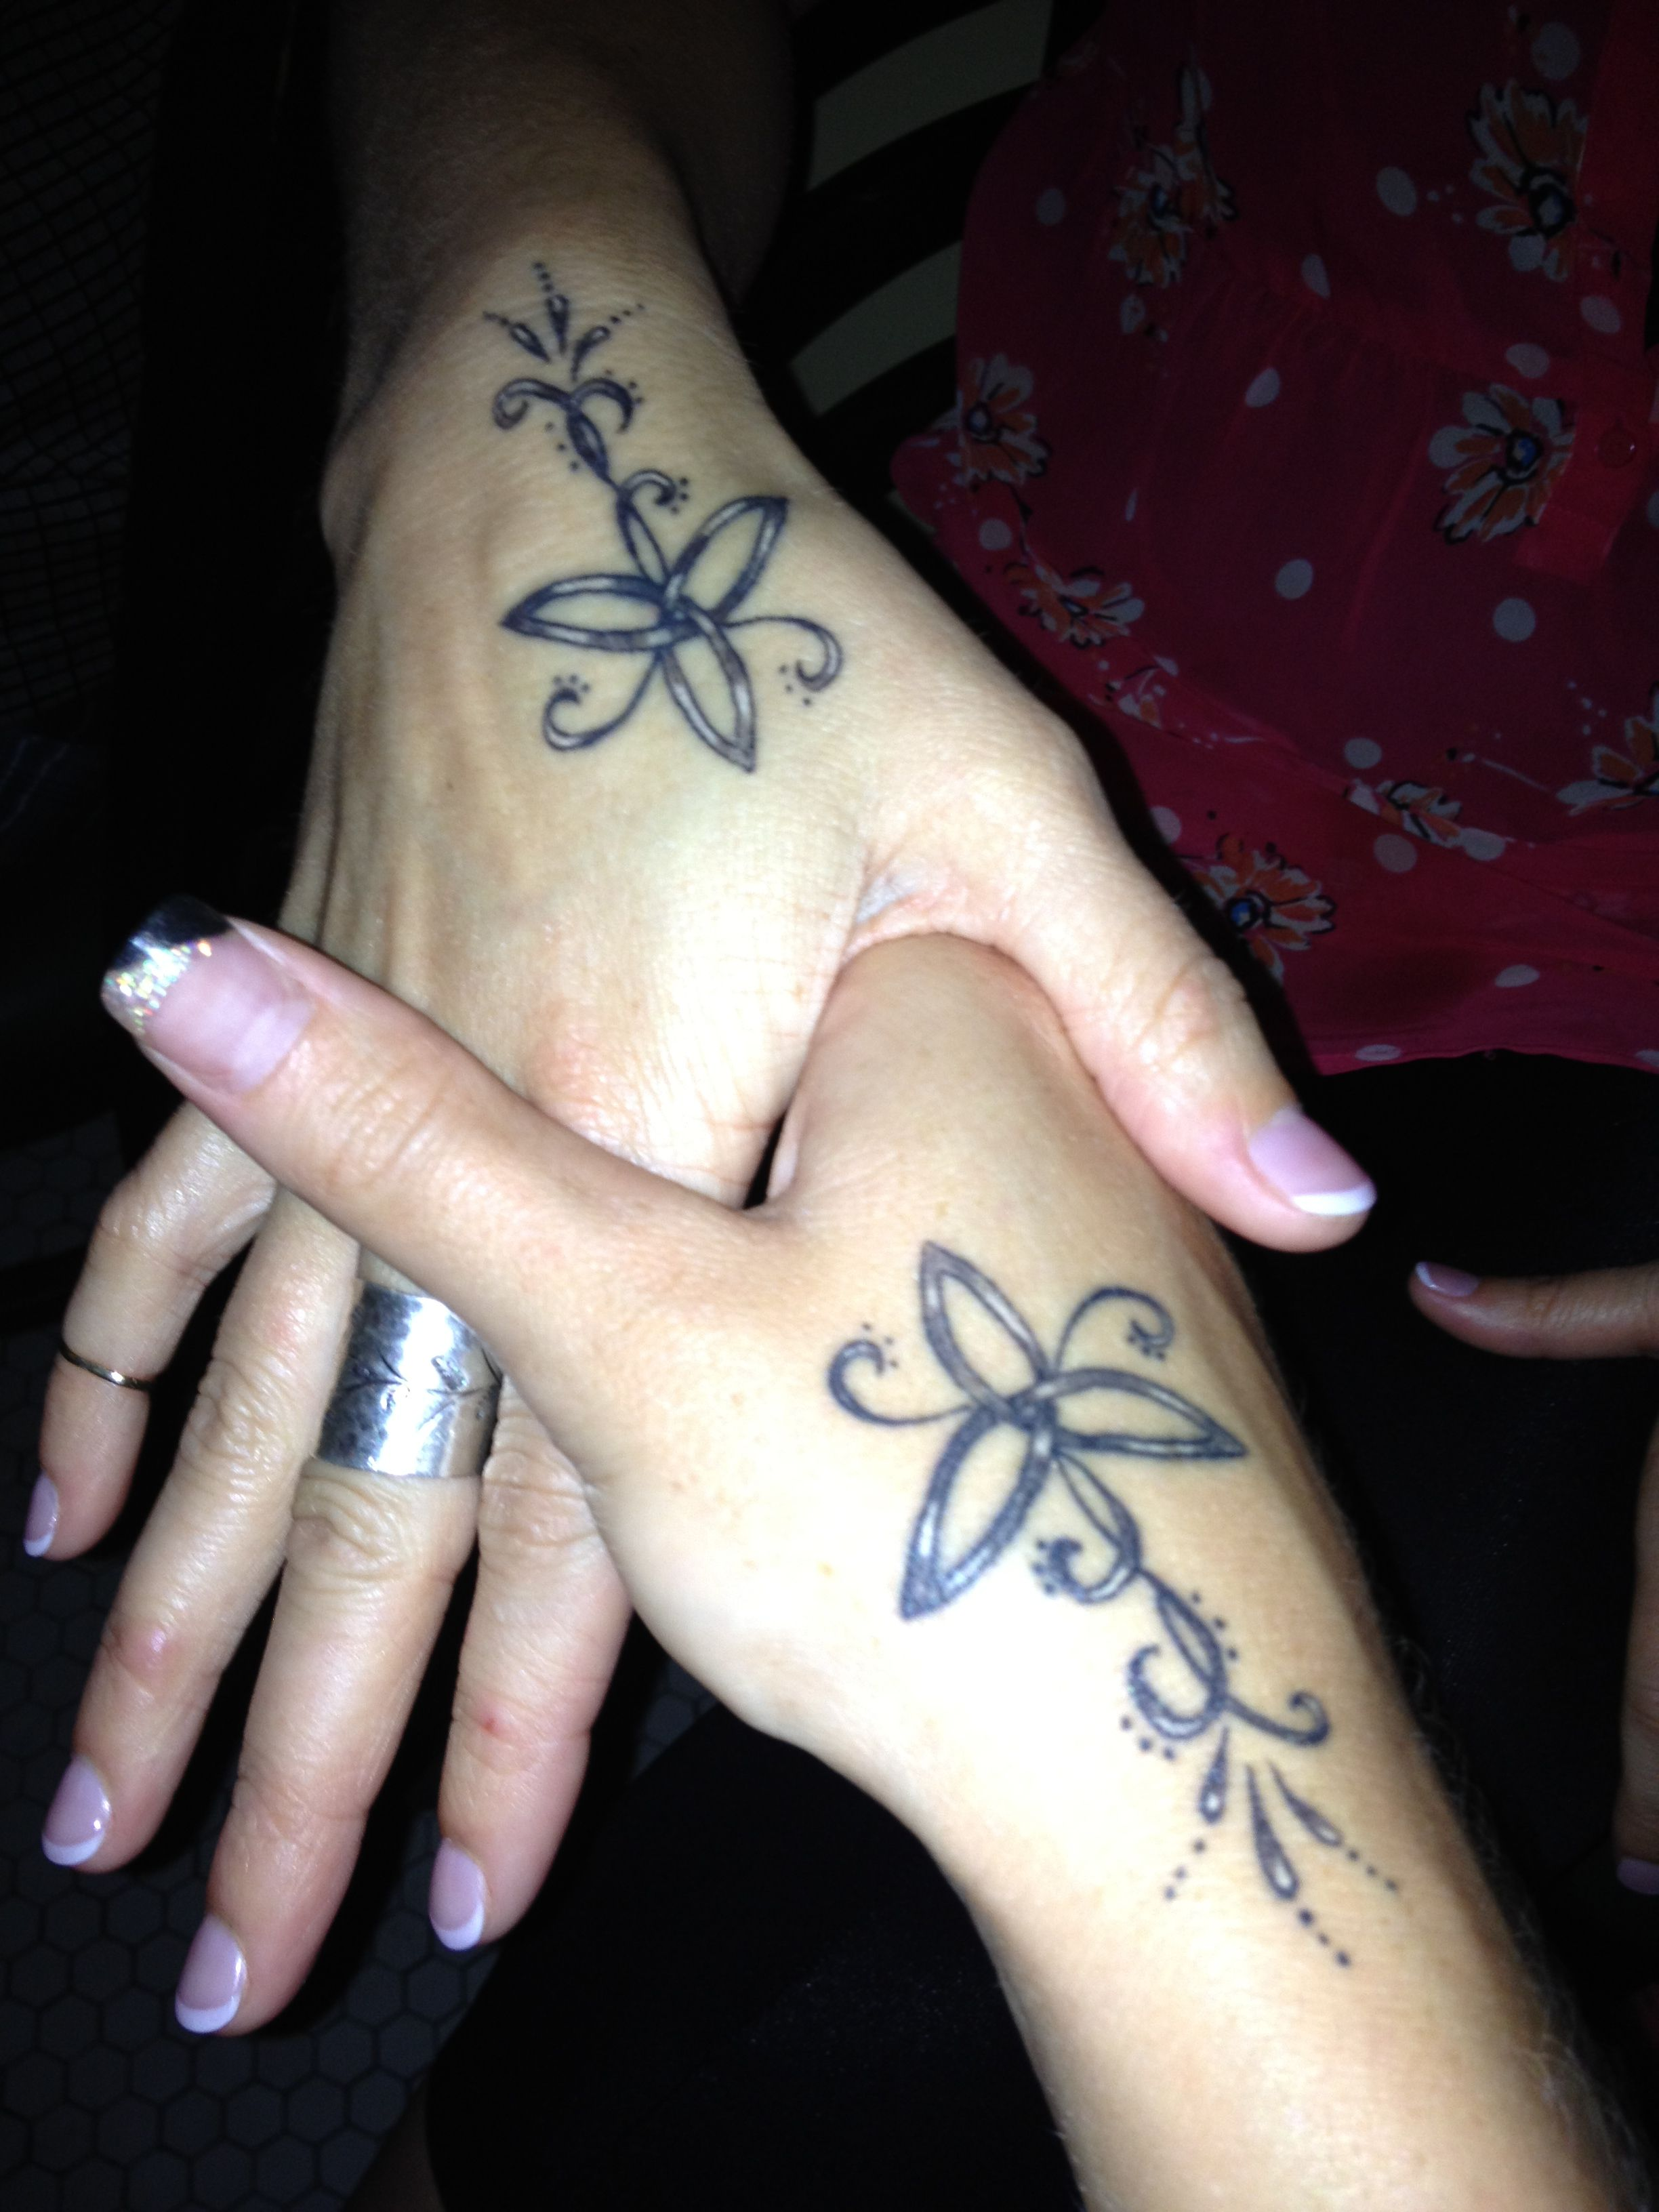 Best friend and sisters tattoo!!! Random Pinterest